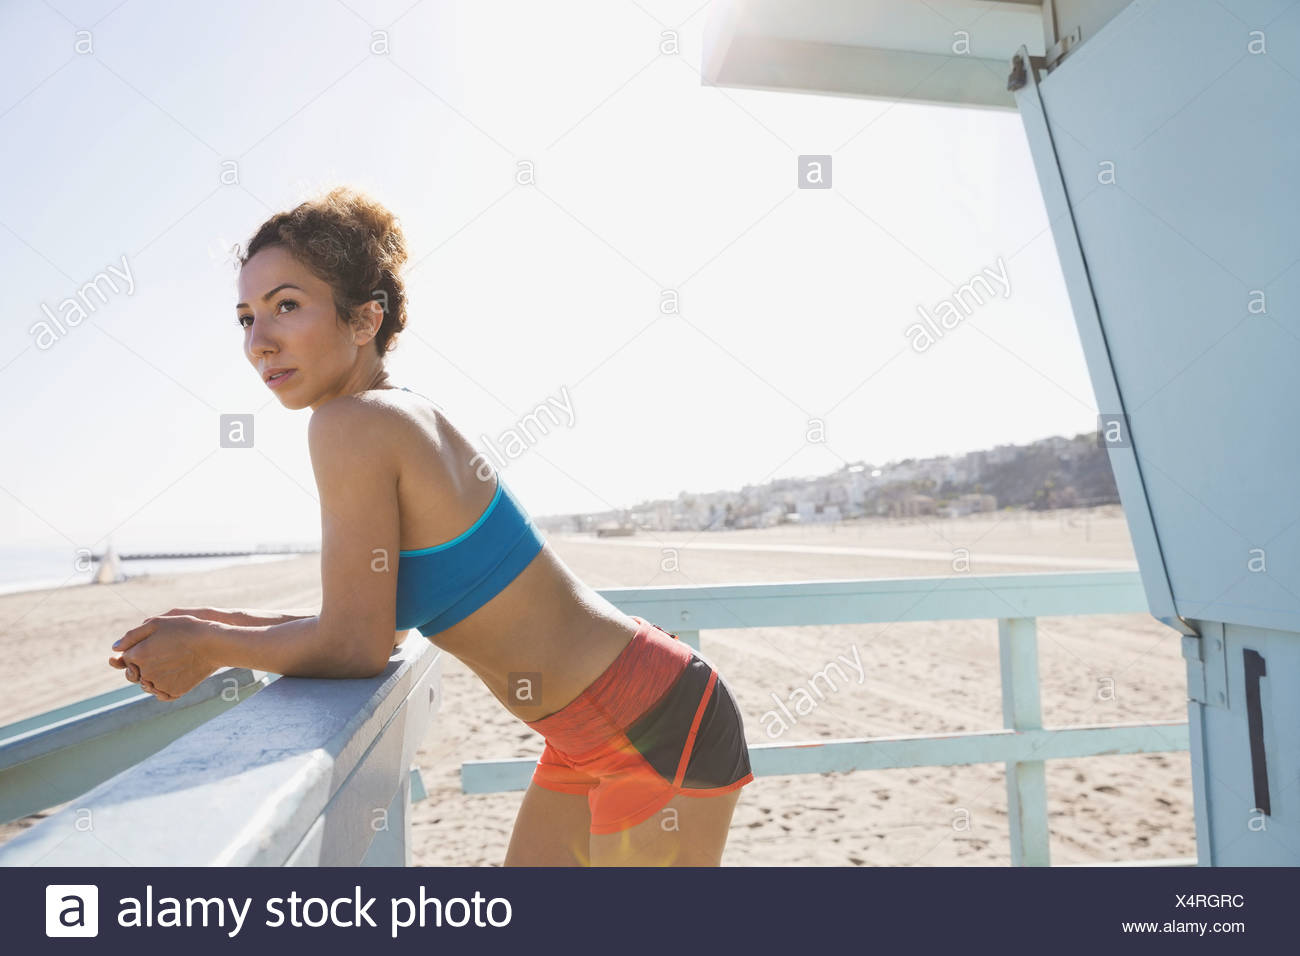 thoughtful woman leaning against railing on beach stock photo